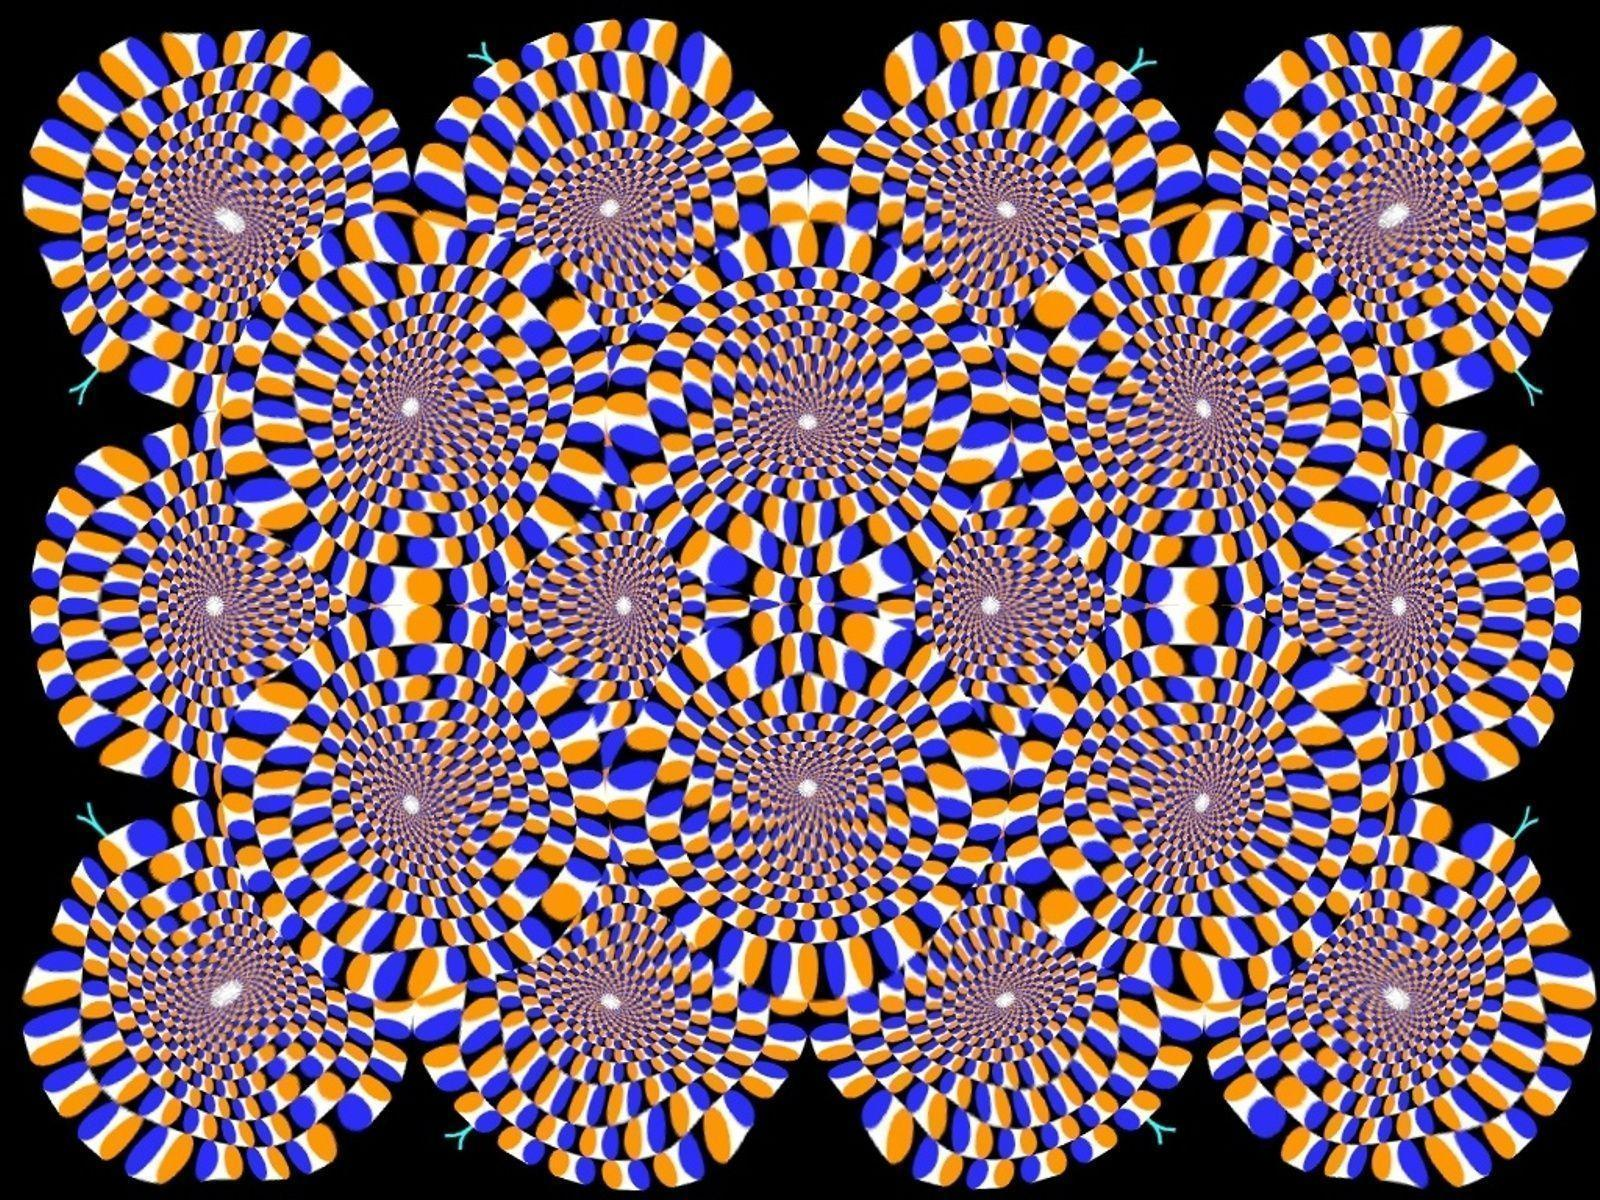 Optical Illusions Backgrounds Wallpapers 55118 High Resolution